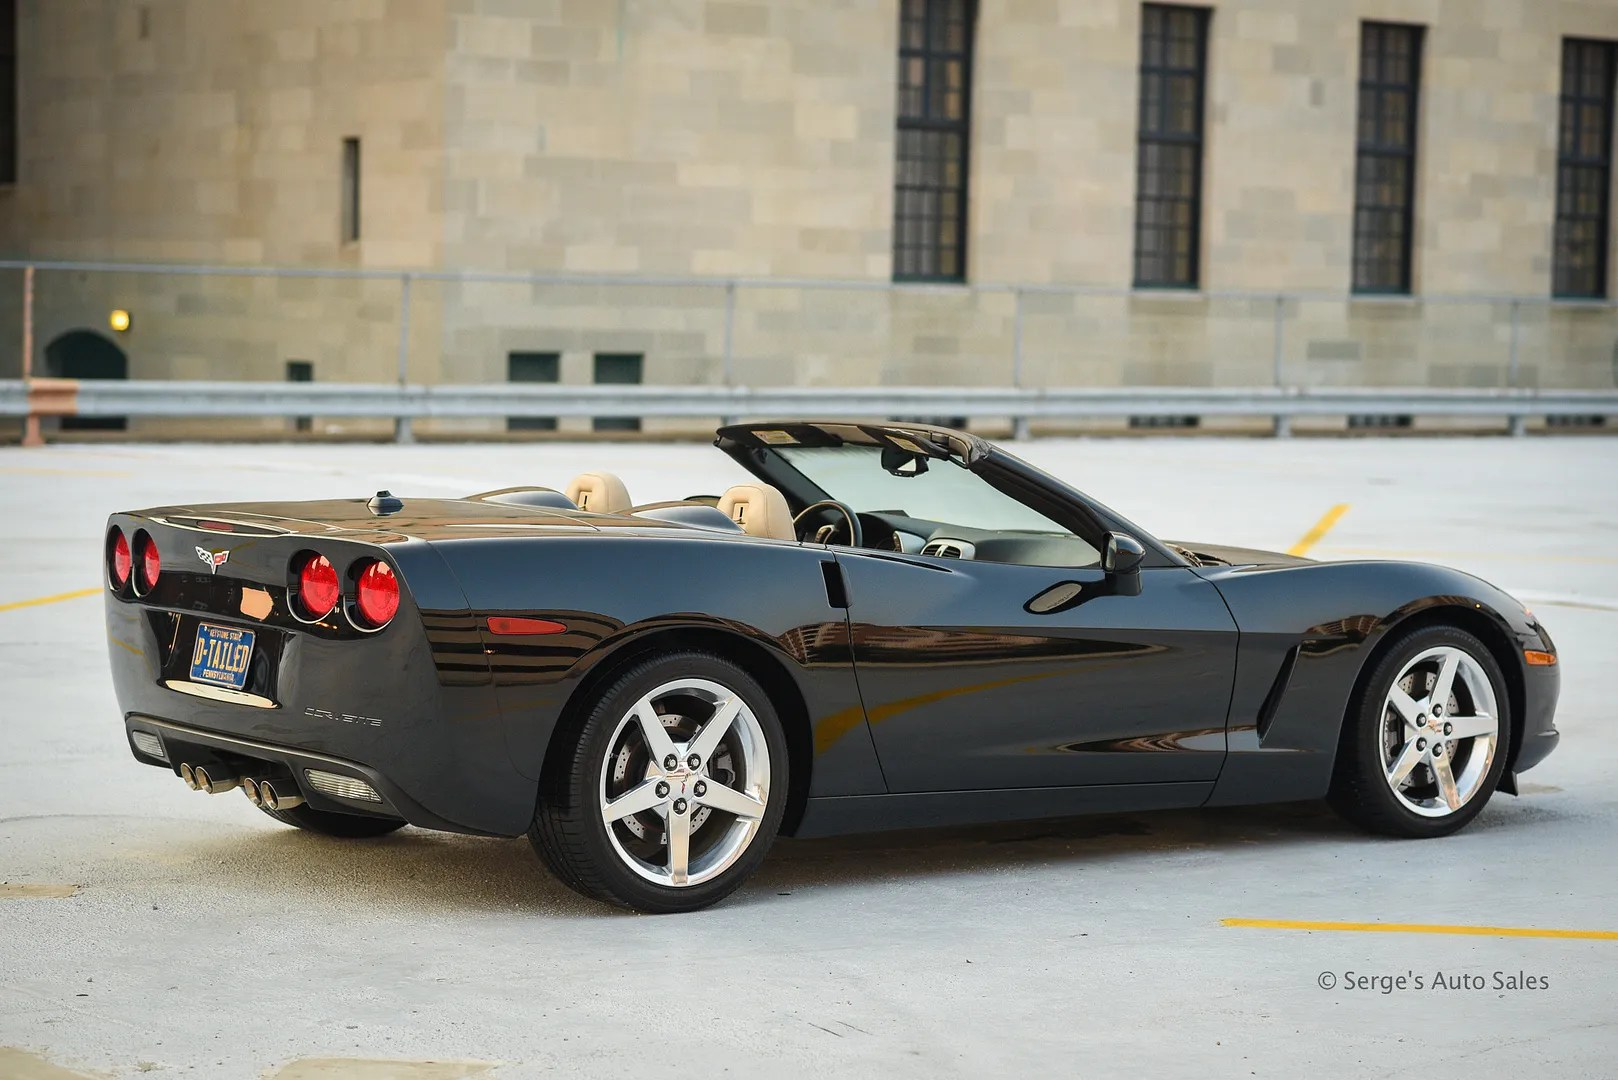 photo 2005-C6-Corvette-Convertible-For-Sale-Scranton-Serges-Auto-Sales-dealer--28_zpsmycuydwg.jpg